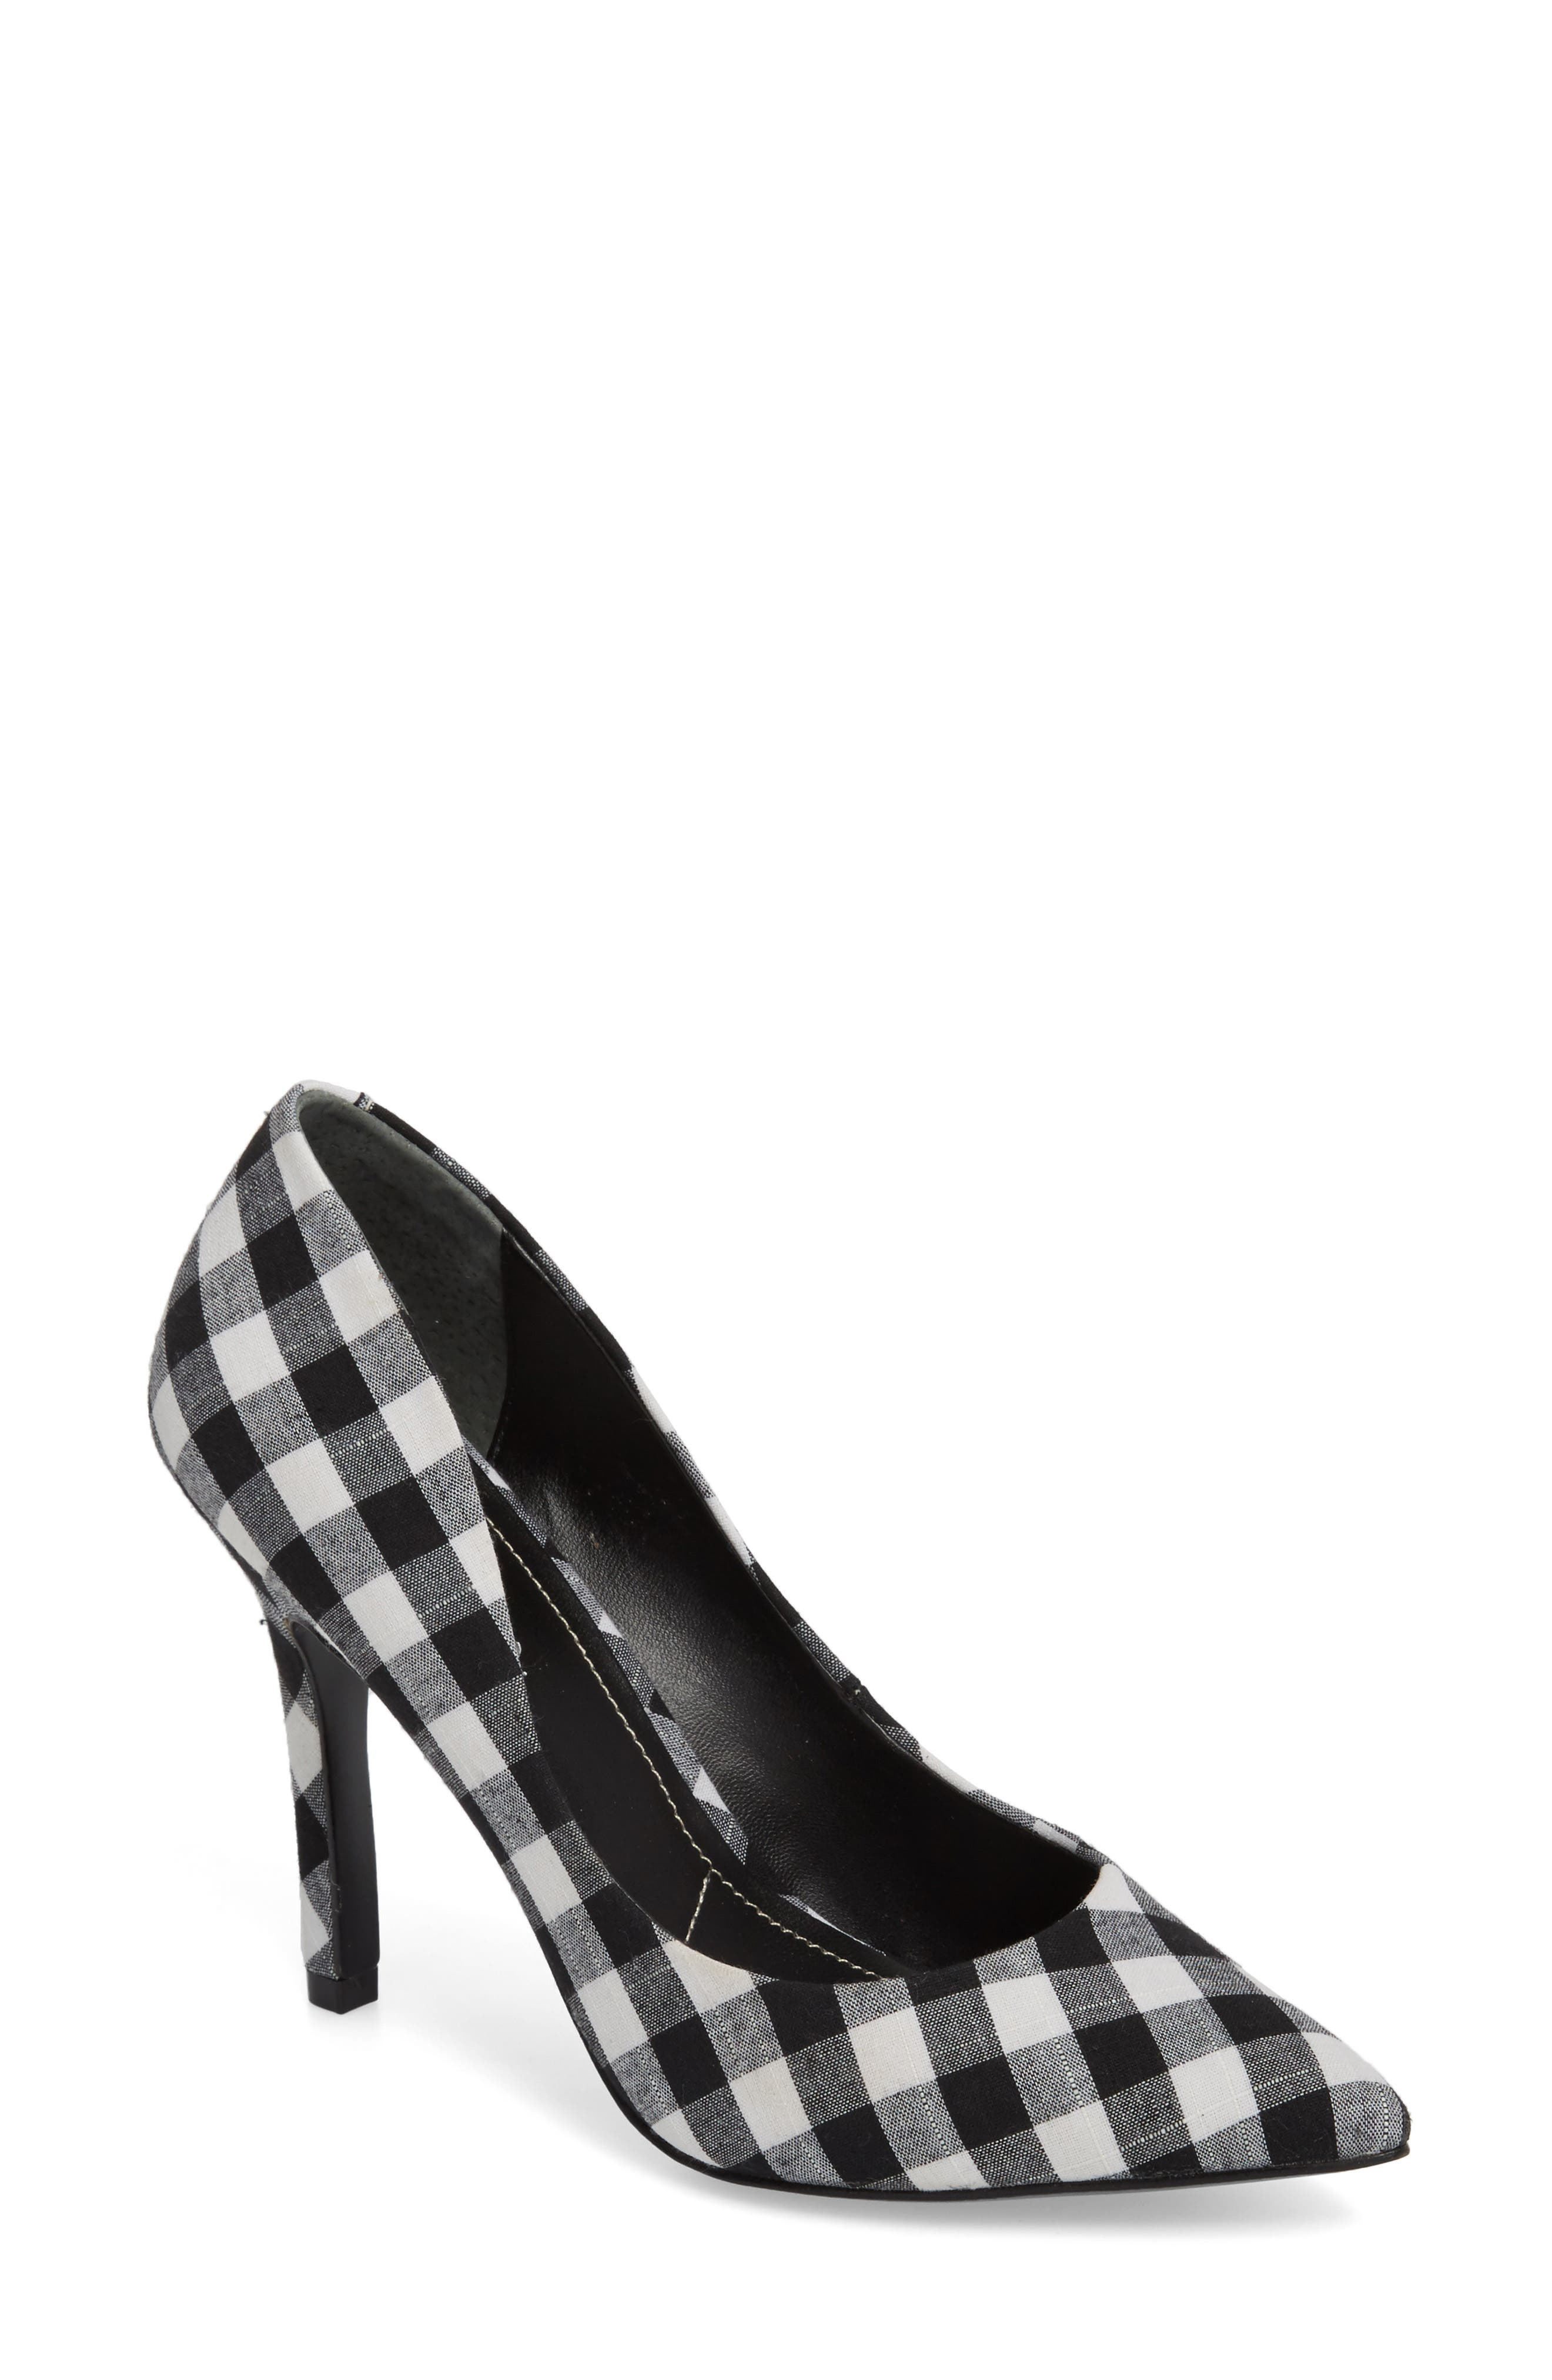 Maxx Pointy Toe Pump,                             Main thumbnail 1, color,                             BLACK/ WHITE GINGHAM FABRIC